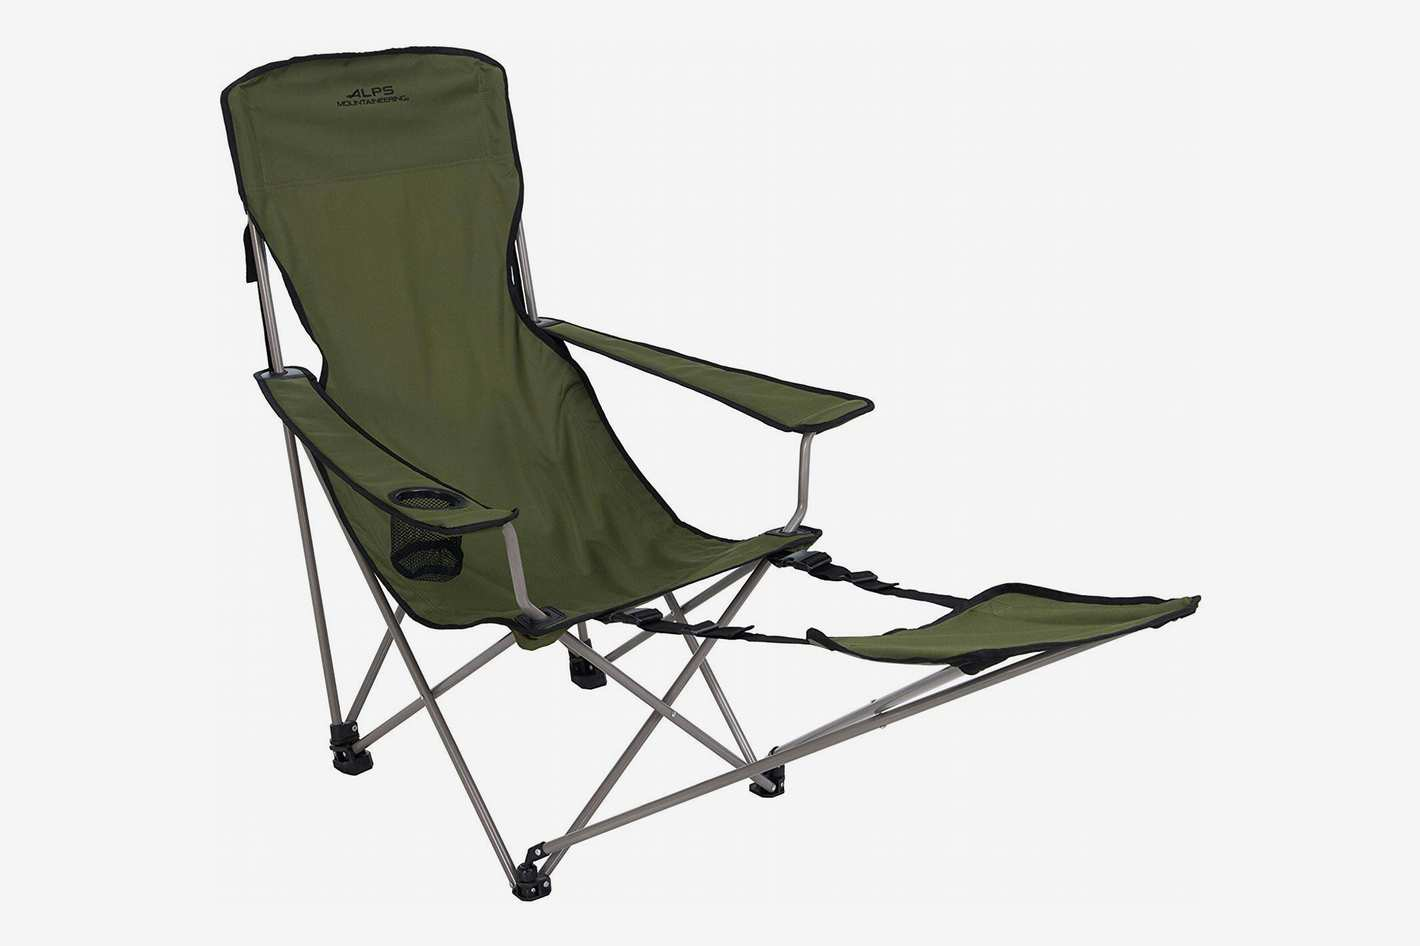 ALPS Mountaineering Escape Chair with Footrest